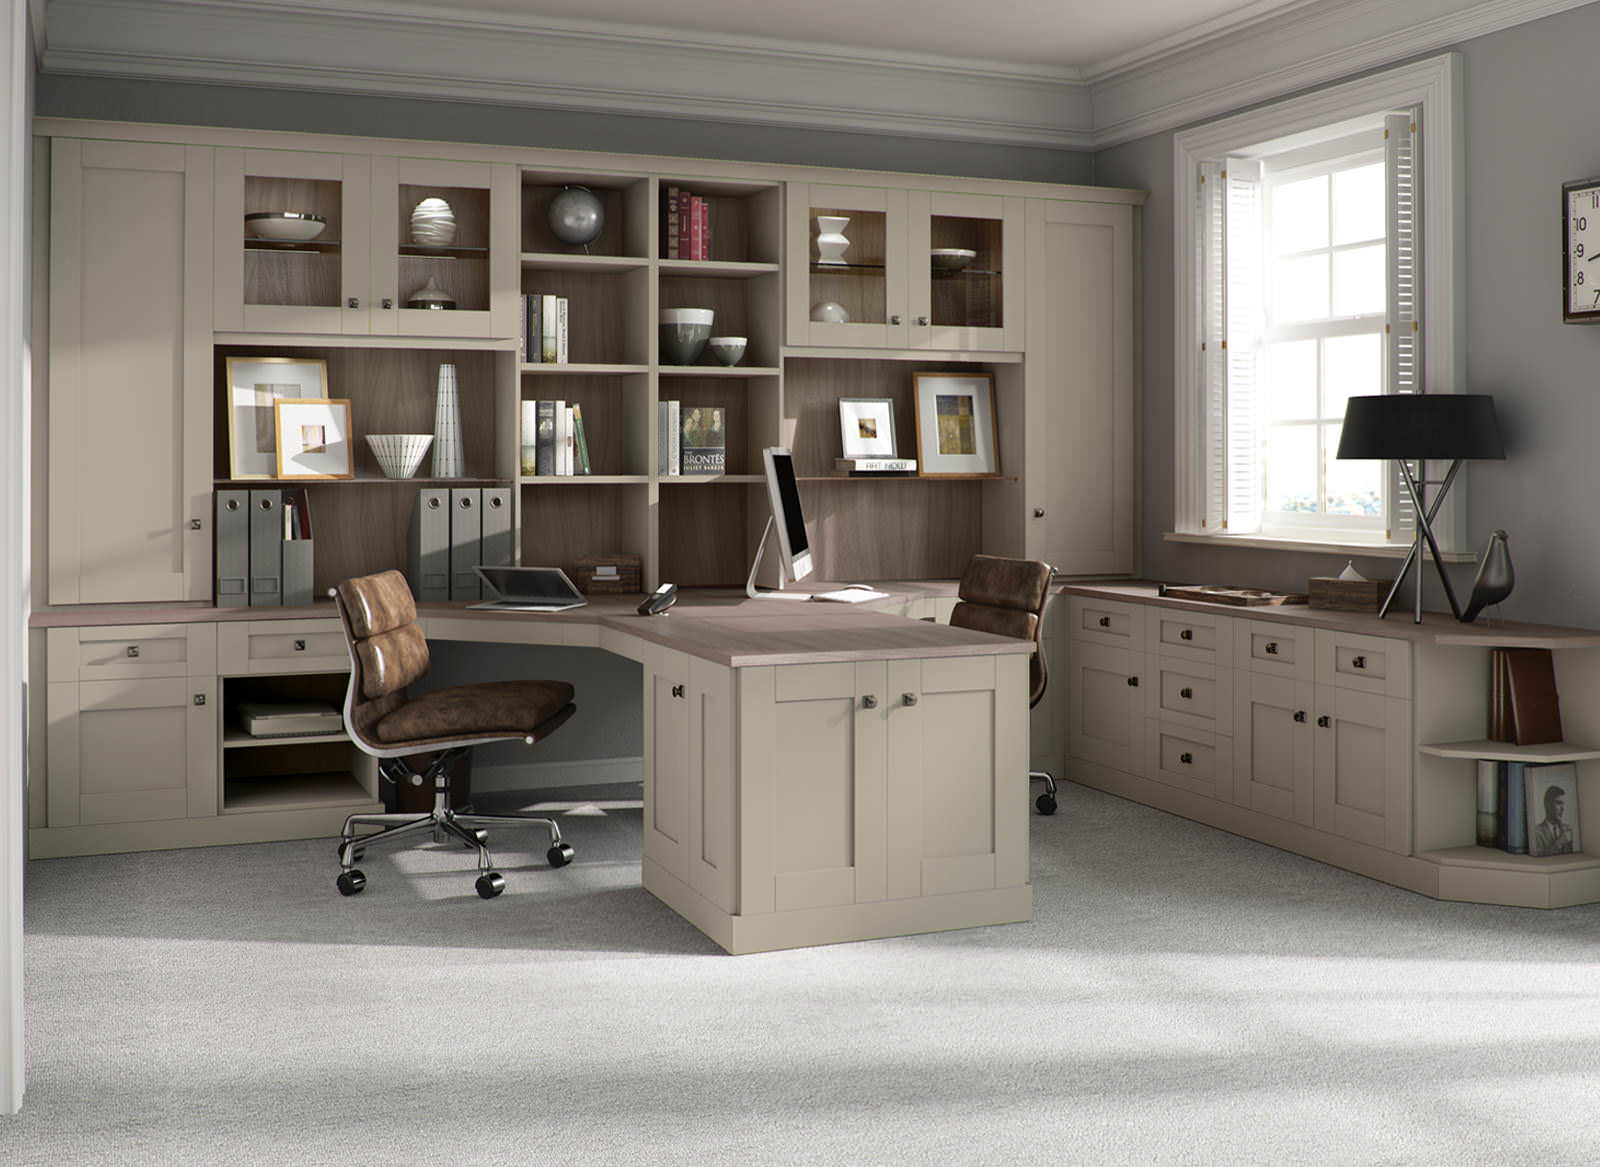 A dual-sided fitted home office desk with shelving units